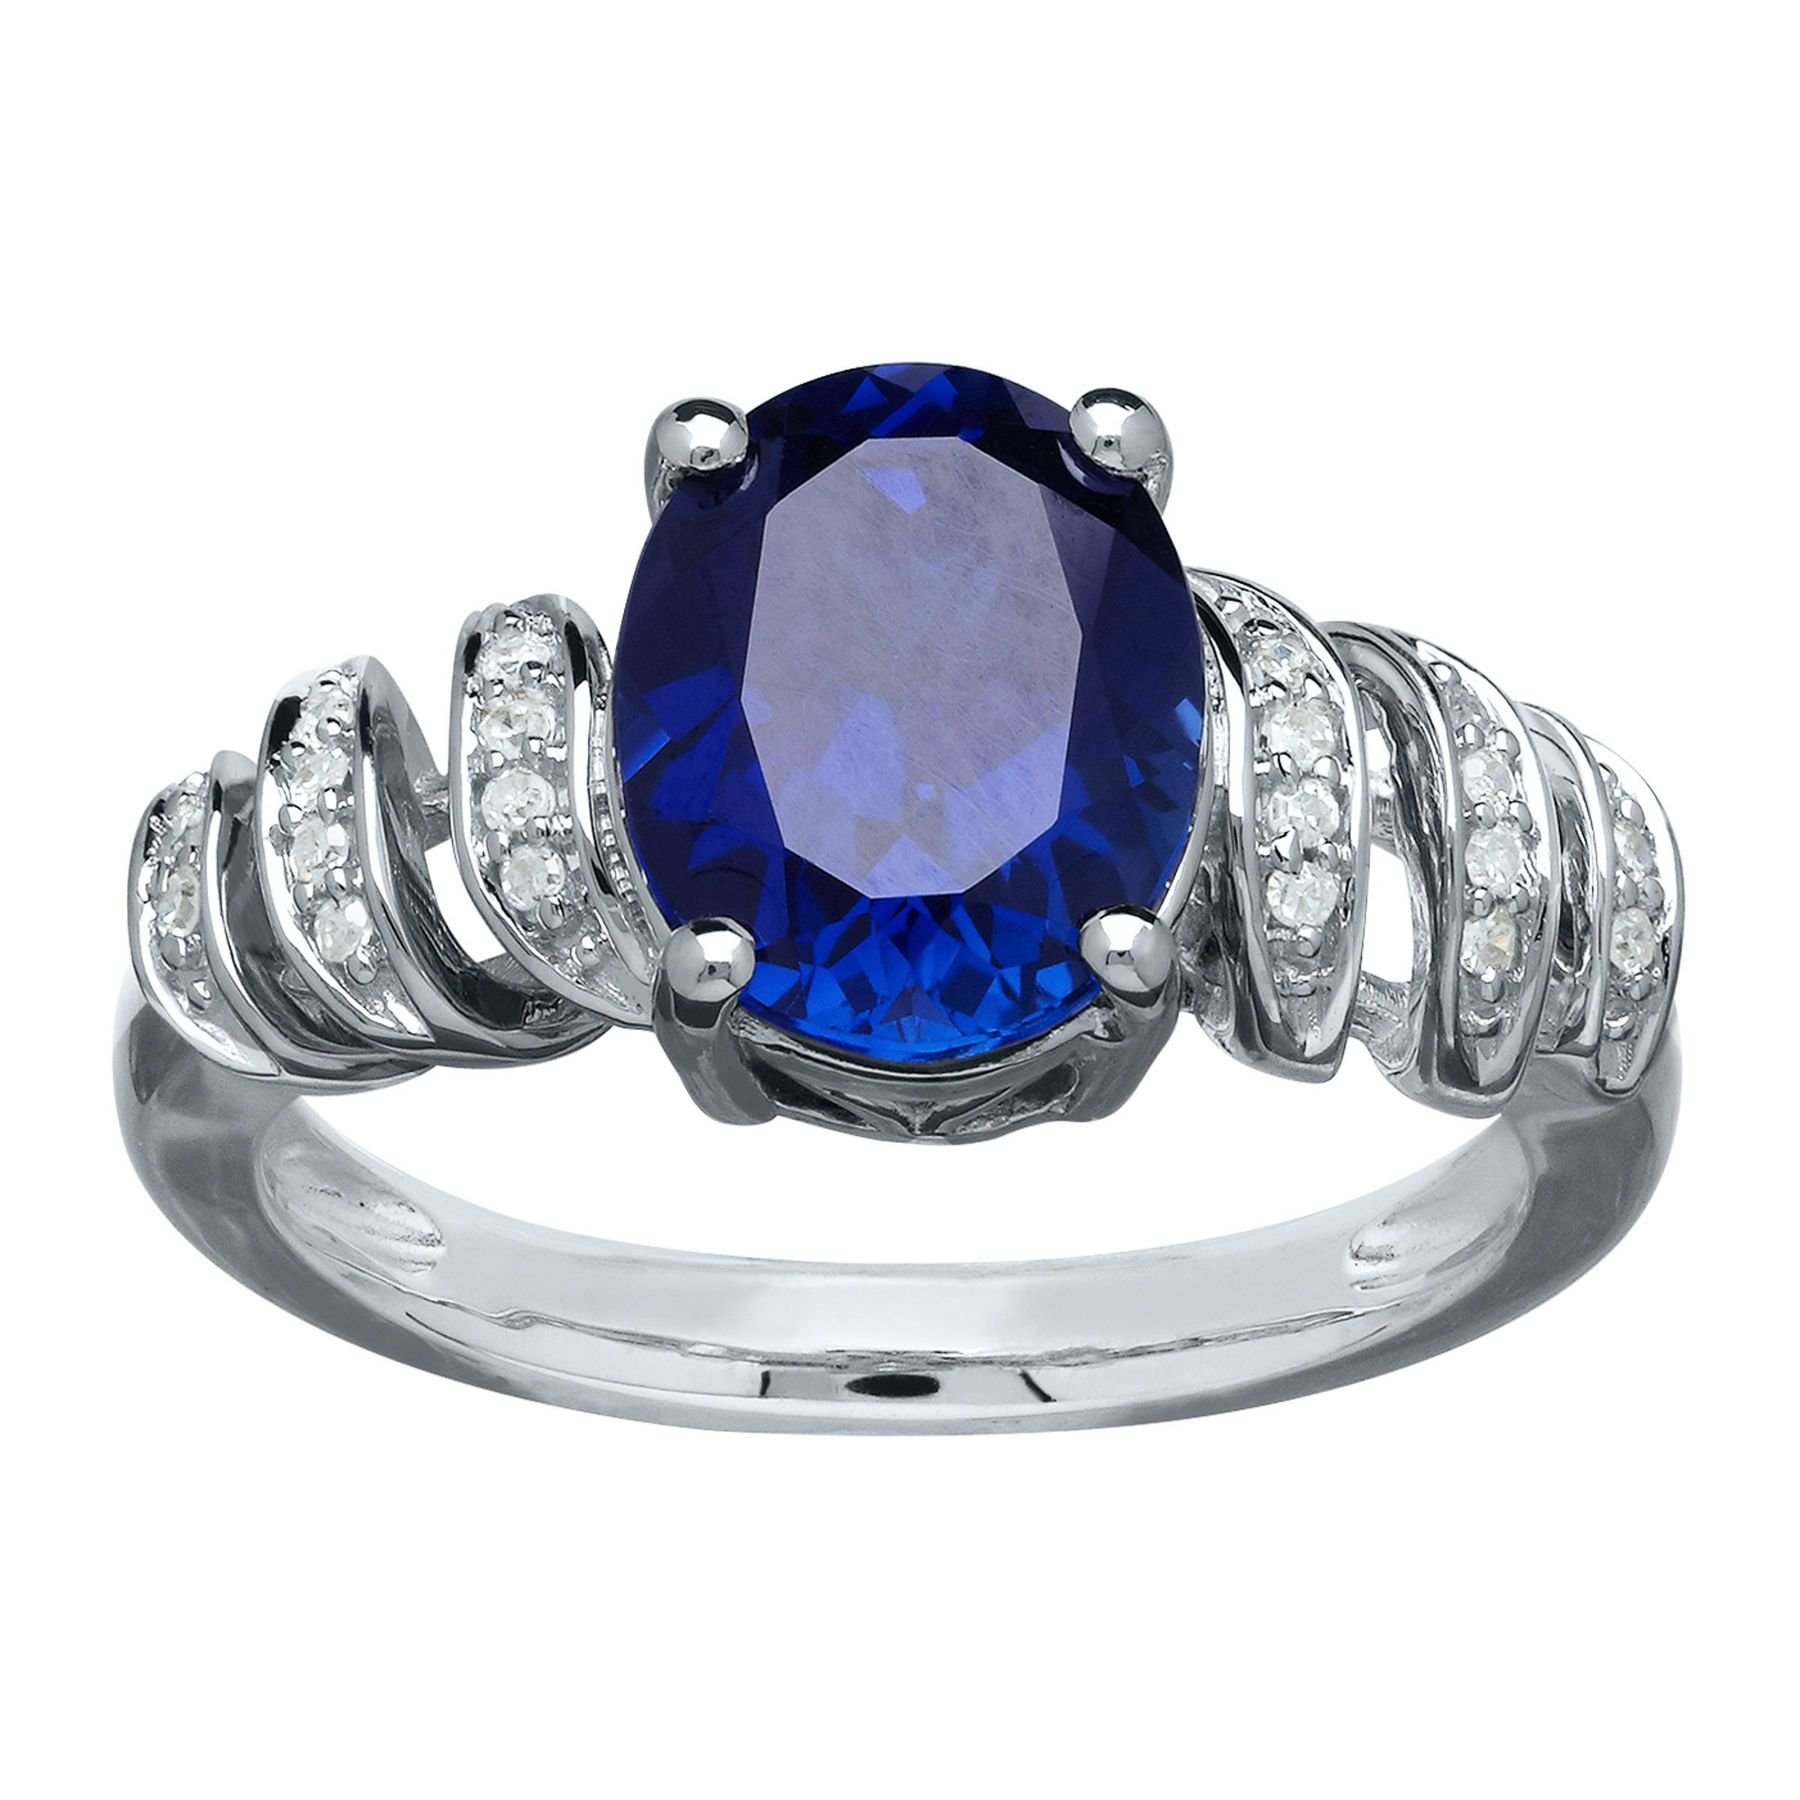 kristin rings sapp band saffire coffin products mod twig white ring oval carat sapphire leaf thyme wh engagement